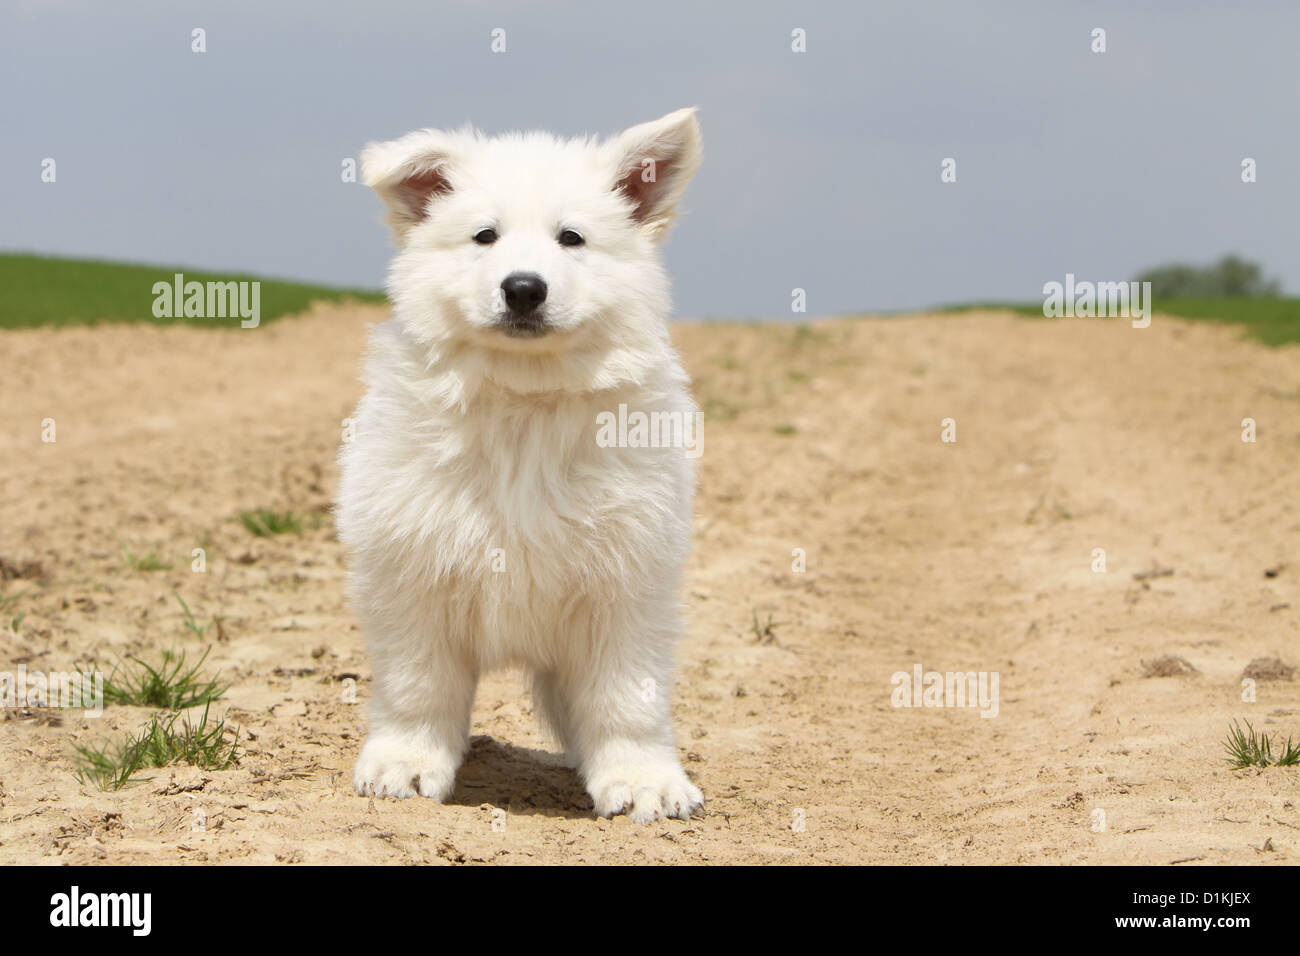 White Swiss Shepherd Dog Berger Blanc Suisse Puppy Standing Stock